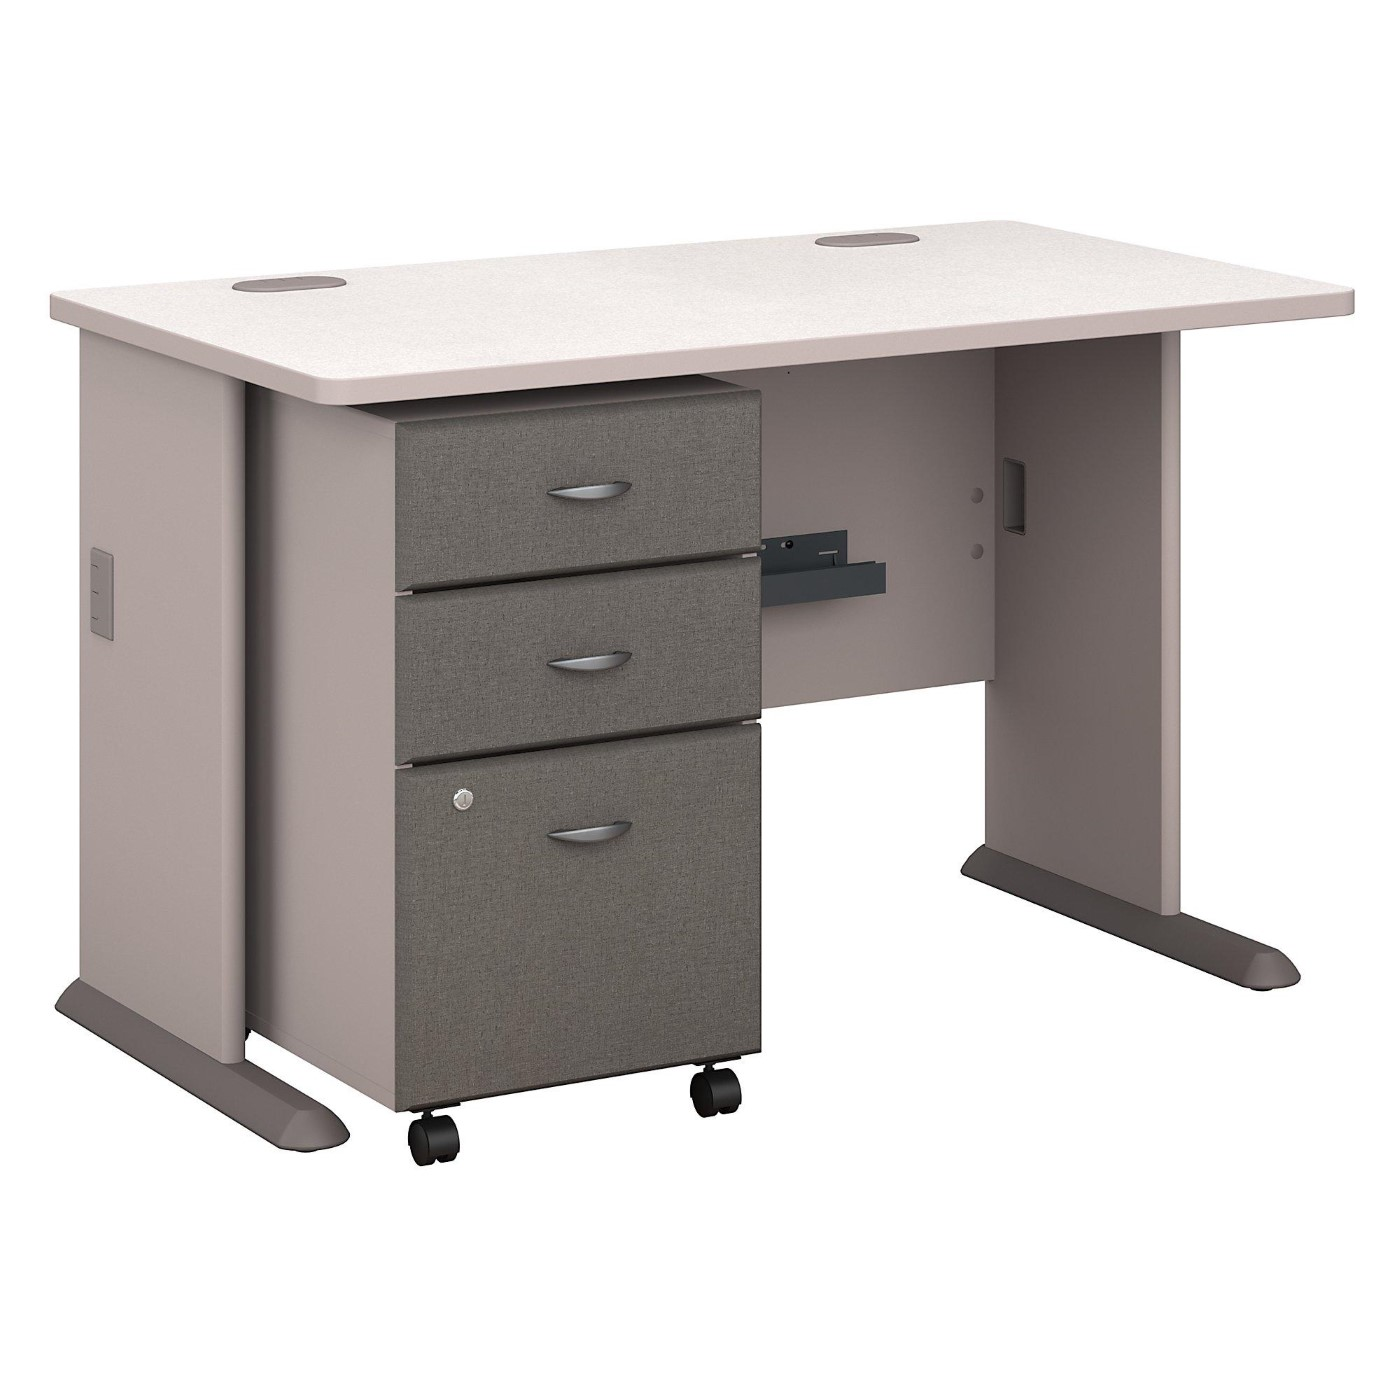 <font color=#c60><b>BUSH BUSINESS FURNITURE SERIES A 48W DESK WITH MOBILE FILE CABINET. FREE SHIPPING</font></b></font></b>